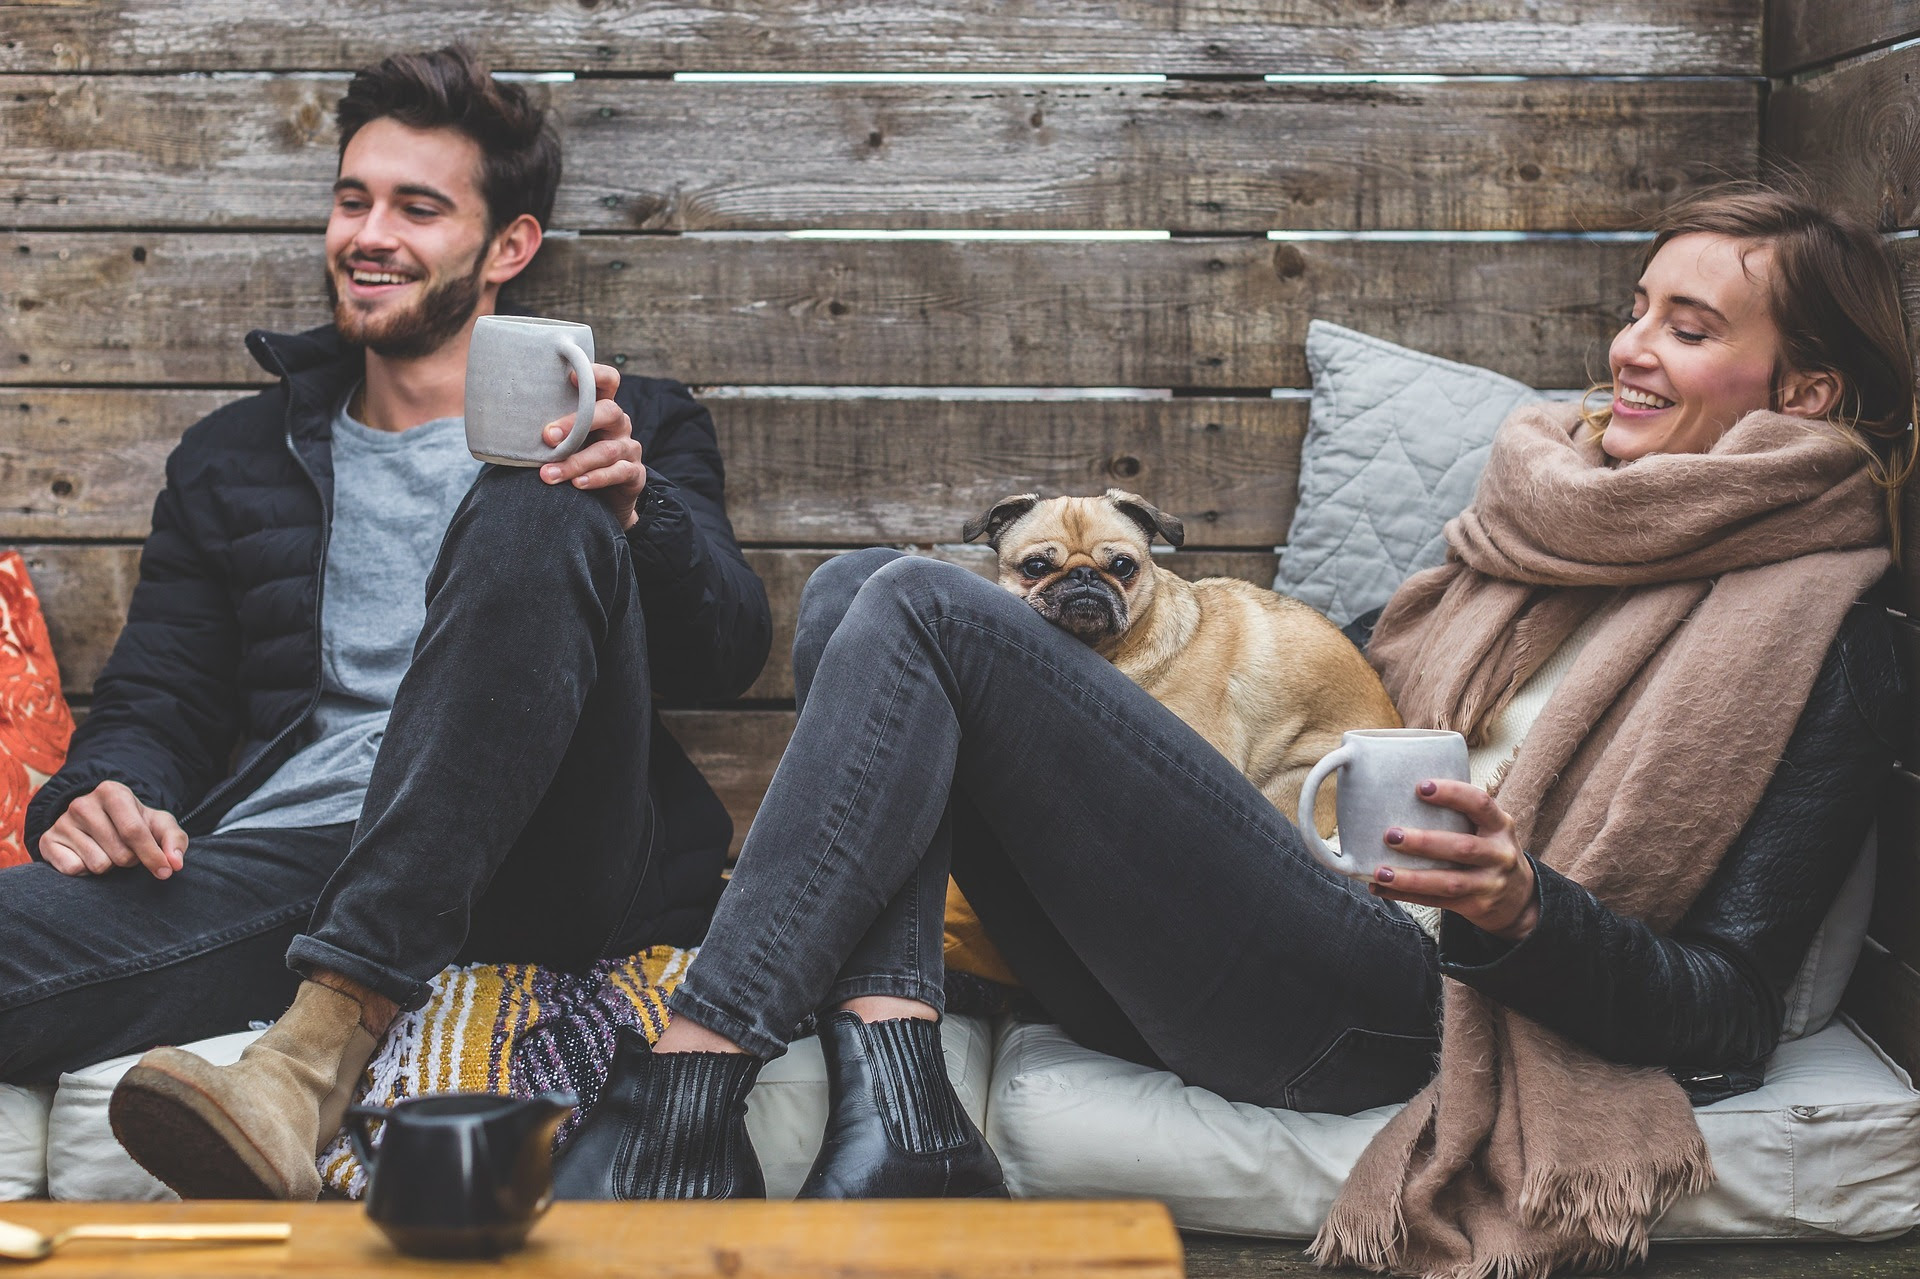 Image os a man and woman talking and drinking coffee with a dog